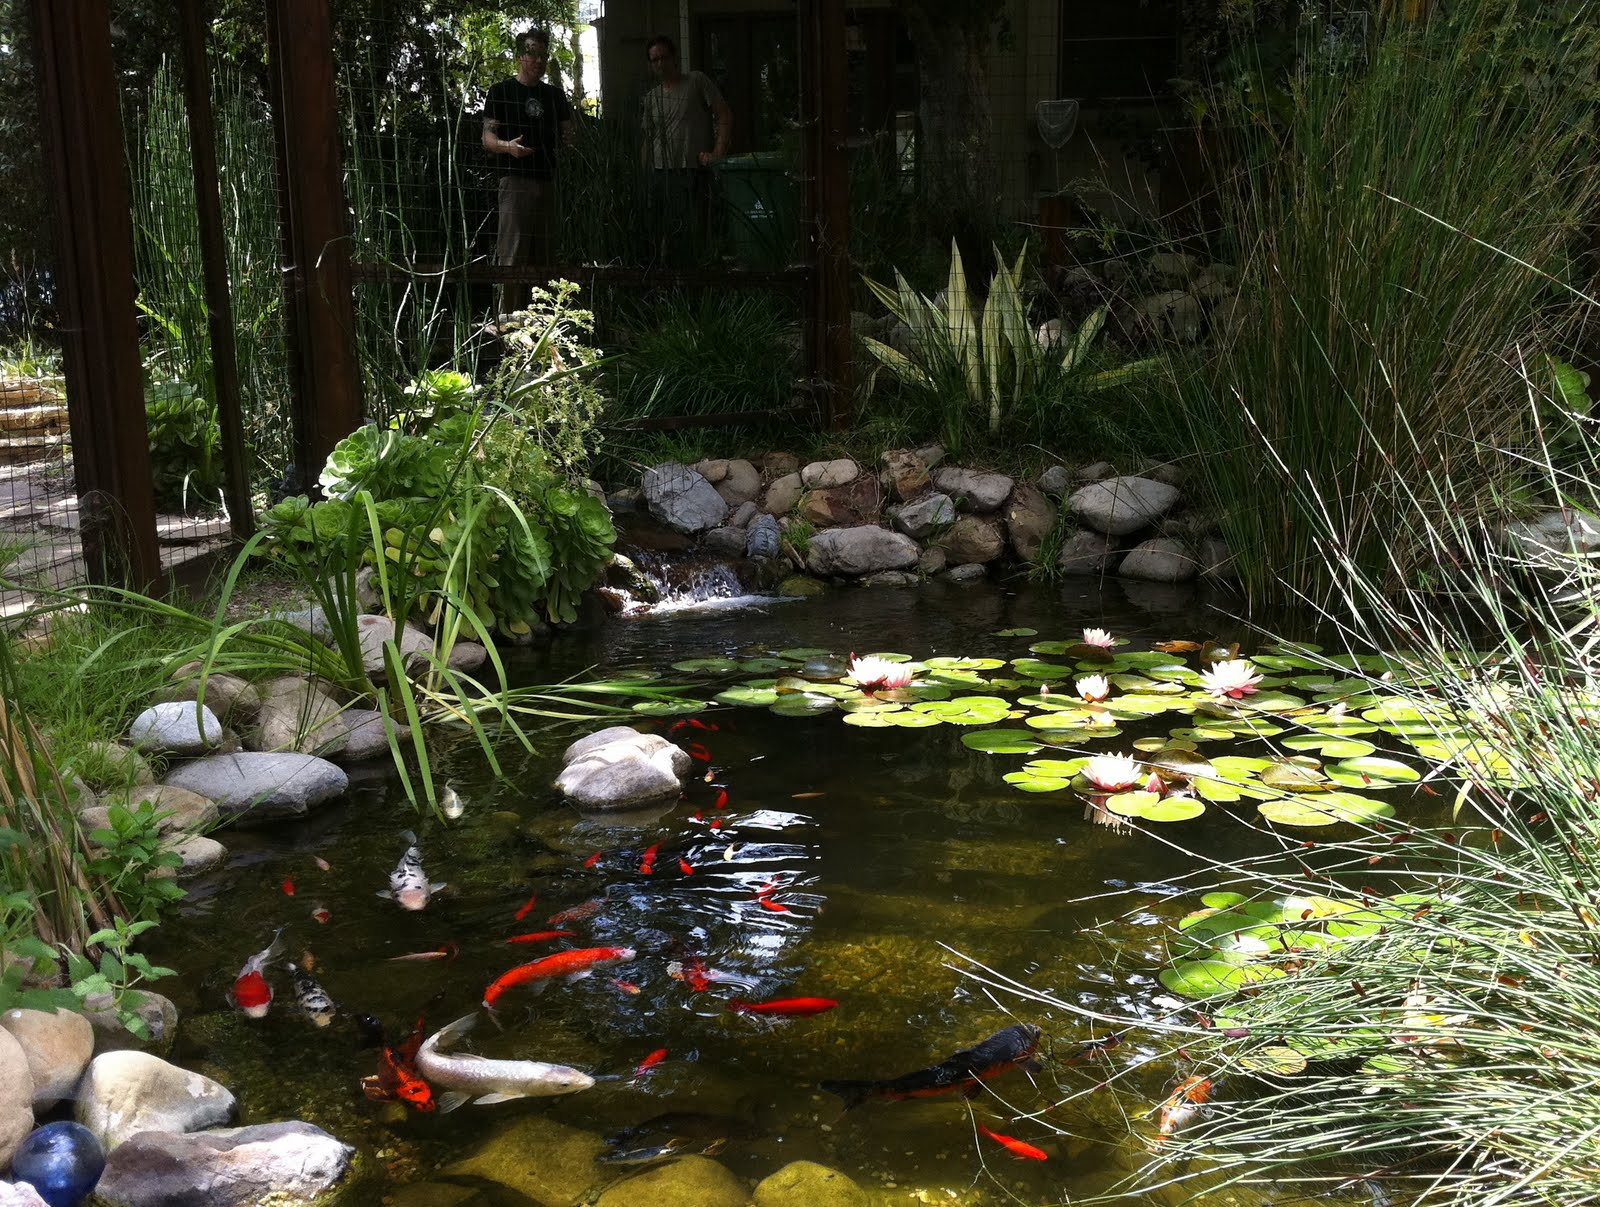 Elgin eco house garden serenity in the midst of the city for Koi carp fish pond